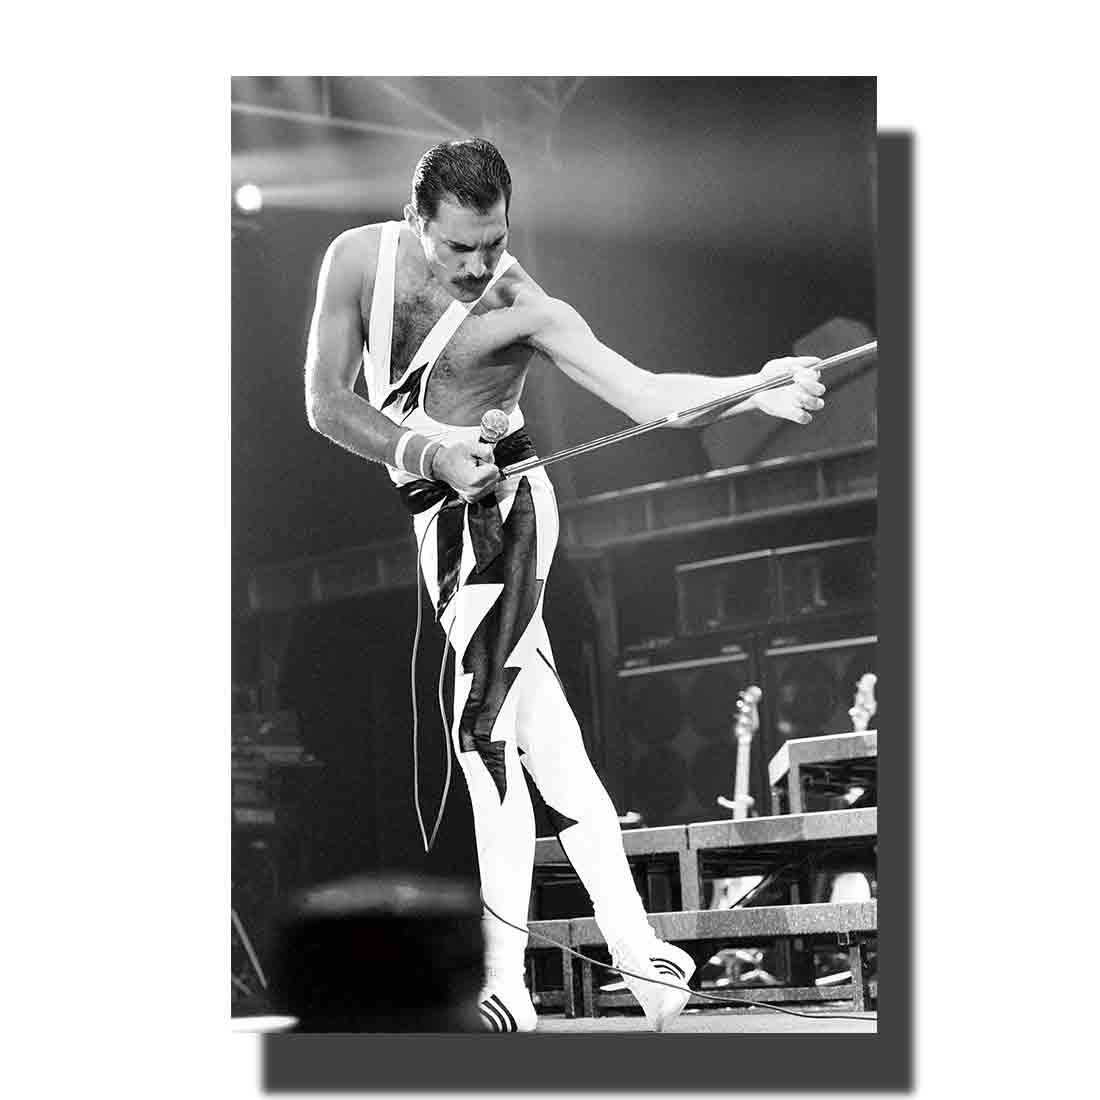 L411 Art Freddie Mercury Queen Legendary Singer Hip Hot Fabric Painting 14x21 24x36 Poster Print Decoration Room Wall Picture